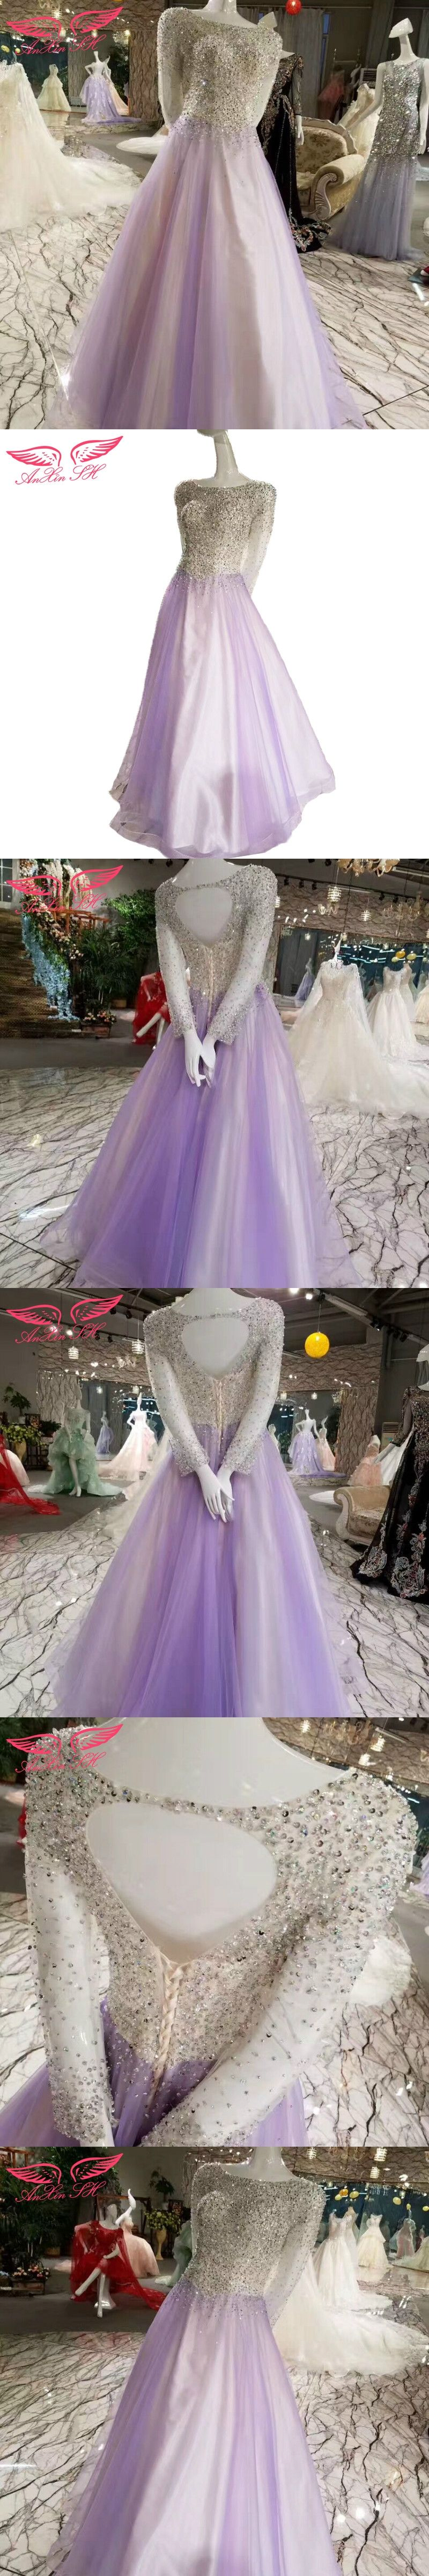 Anxin sh korean princess purple beading evening dress lace purple